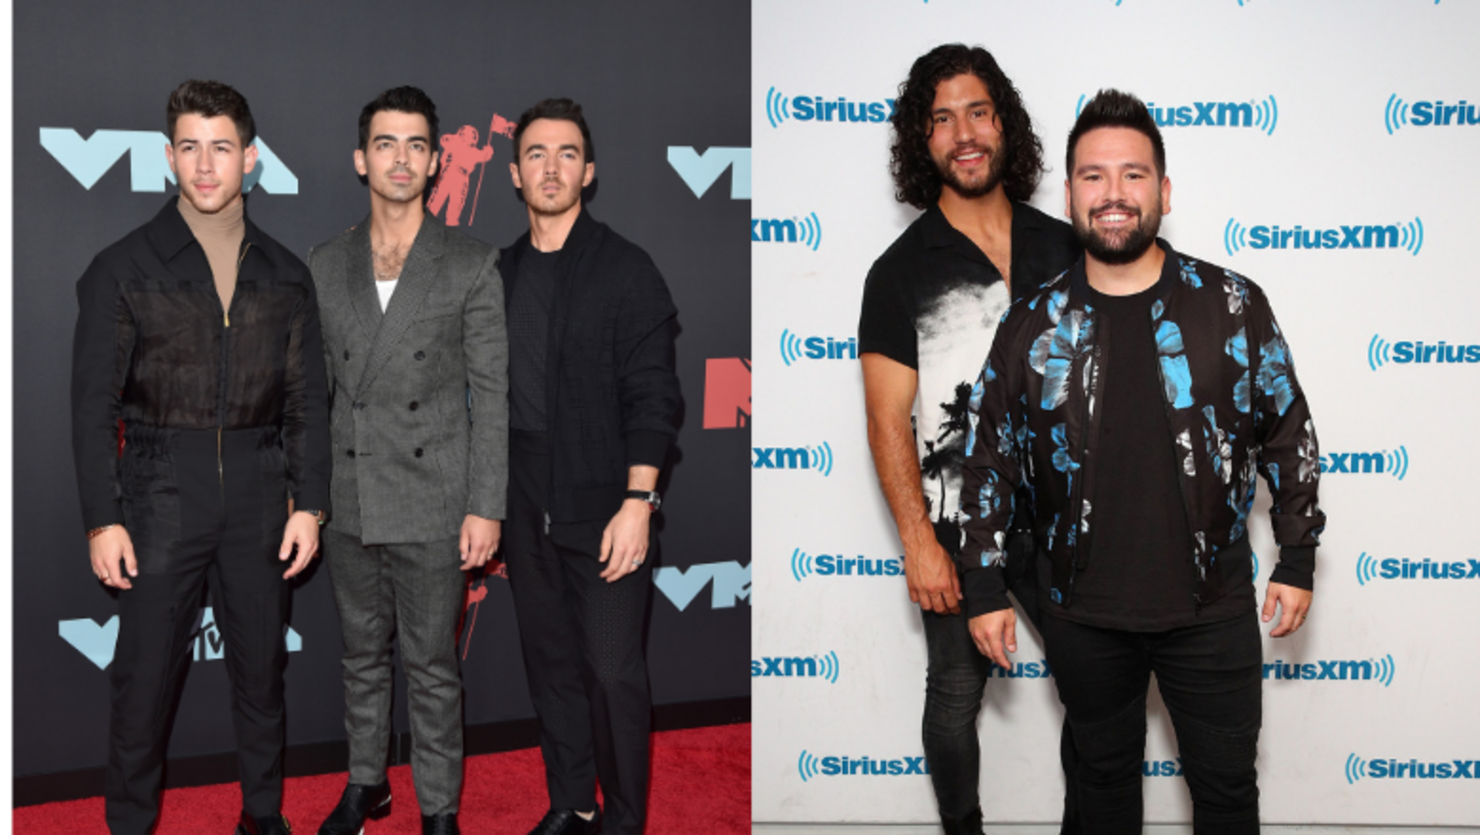 Dan + Shay Join Jonas Brothers To Sing 'Tequila' At Nashville Concert